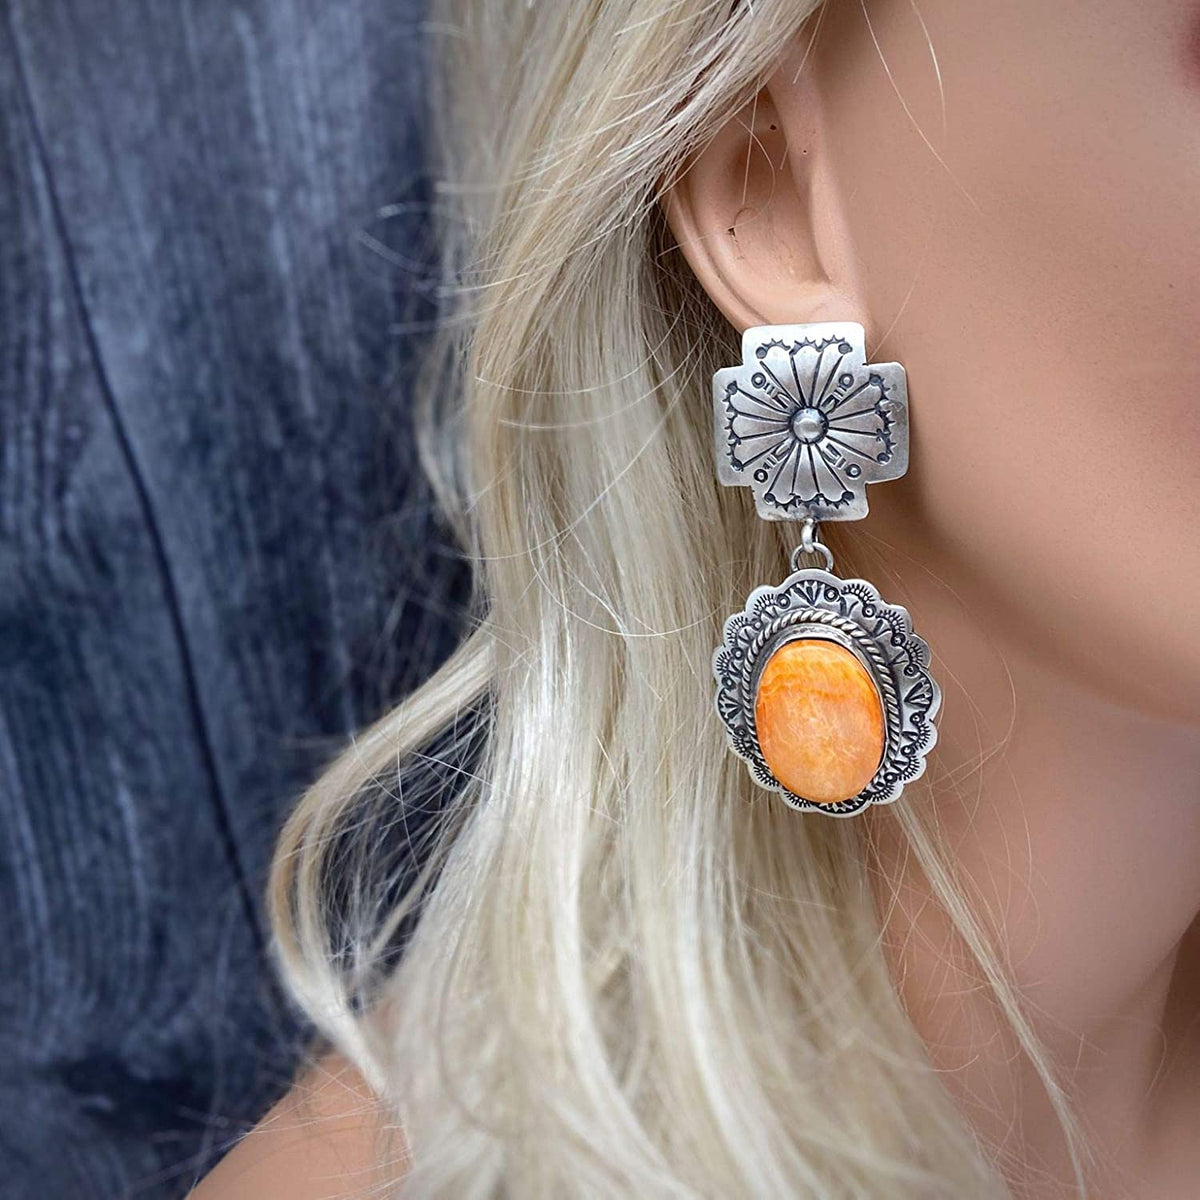 Genuine Orange Spiny Oyster Statement Earrings, Oxidized Sterling Silver, Authentic Navajo Native American USA Handmade, Artist Signed, Nickle Free, Southwest Vintage Style